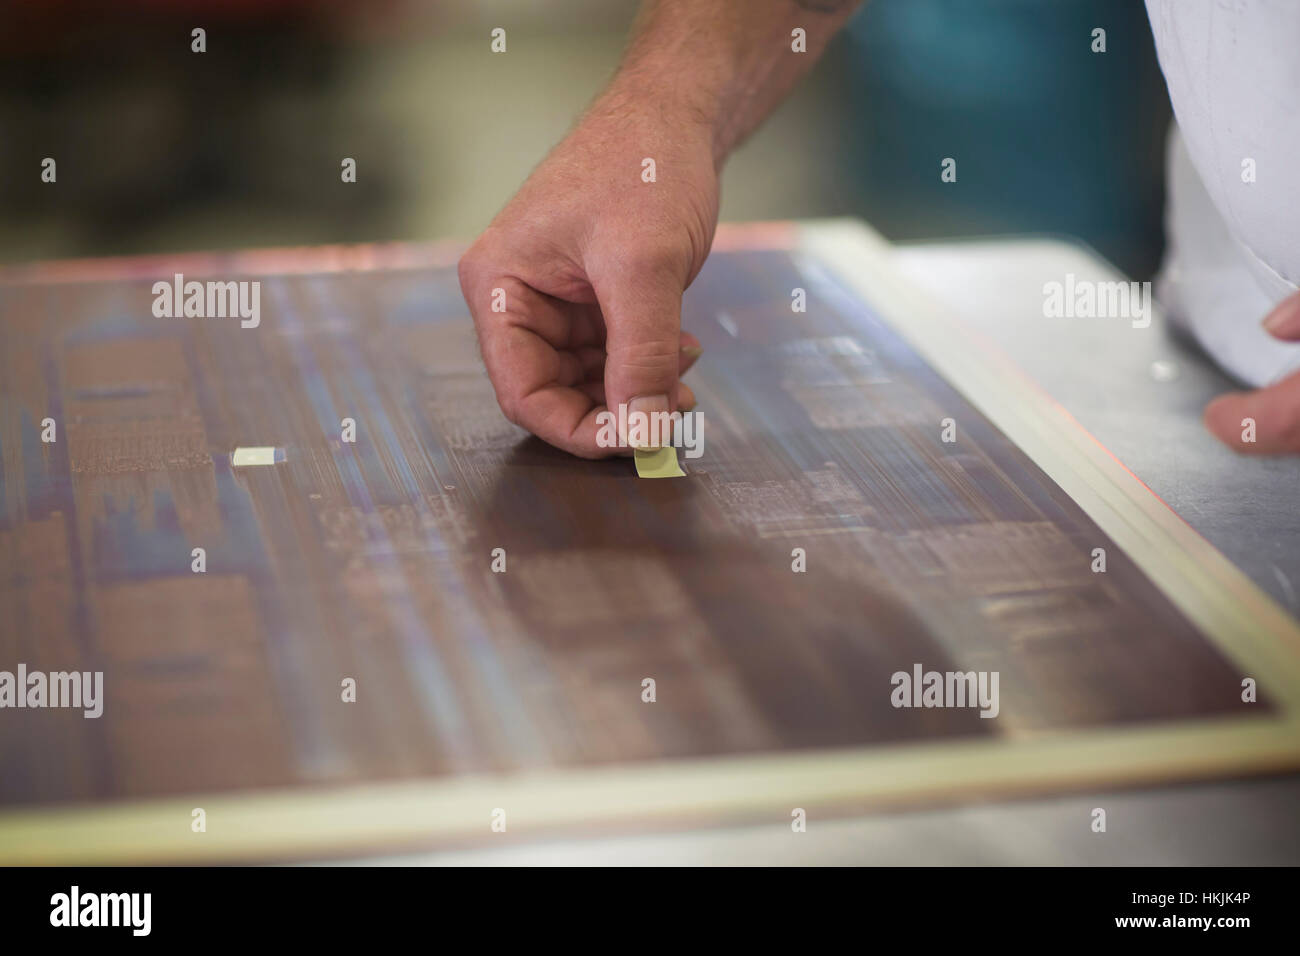 Close-up of human hand examining circuit board in industry,Hanover,Lower Saxony,Germany - Stock Image